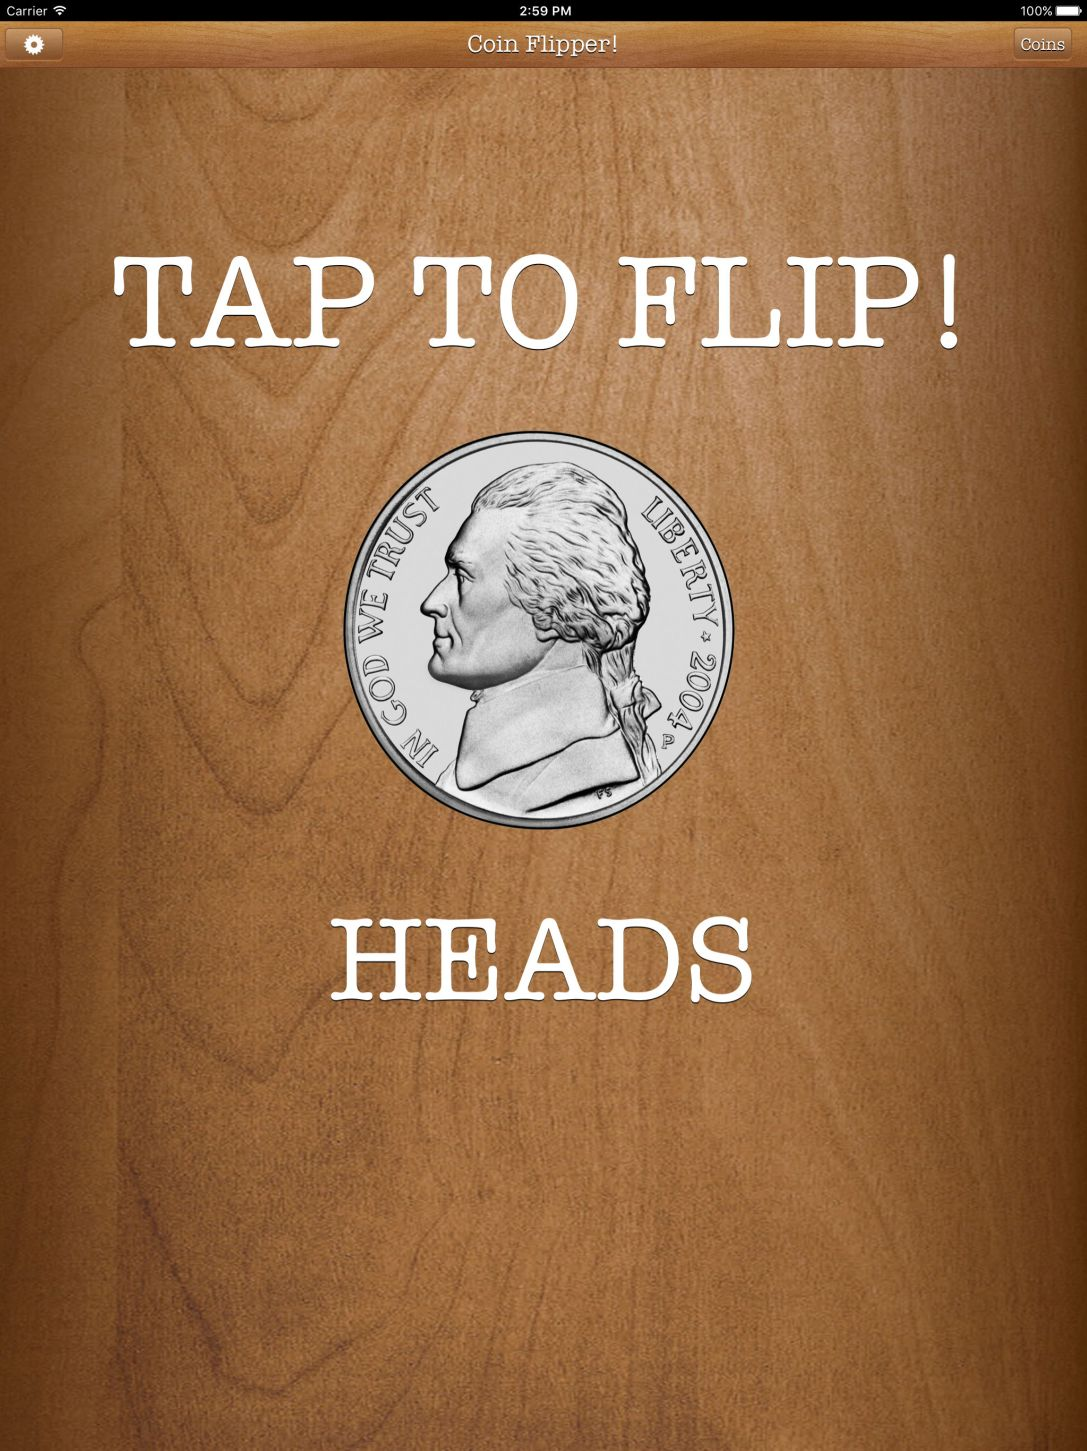 Flip a Coin App nickel on heads iPad Pro screenshot.